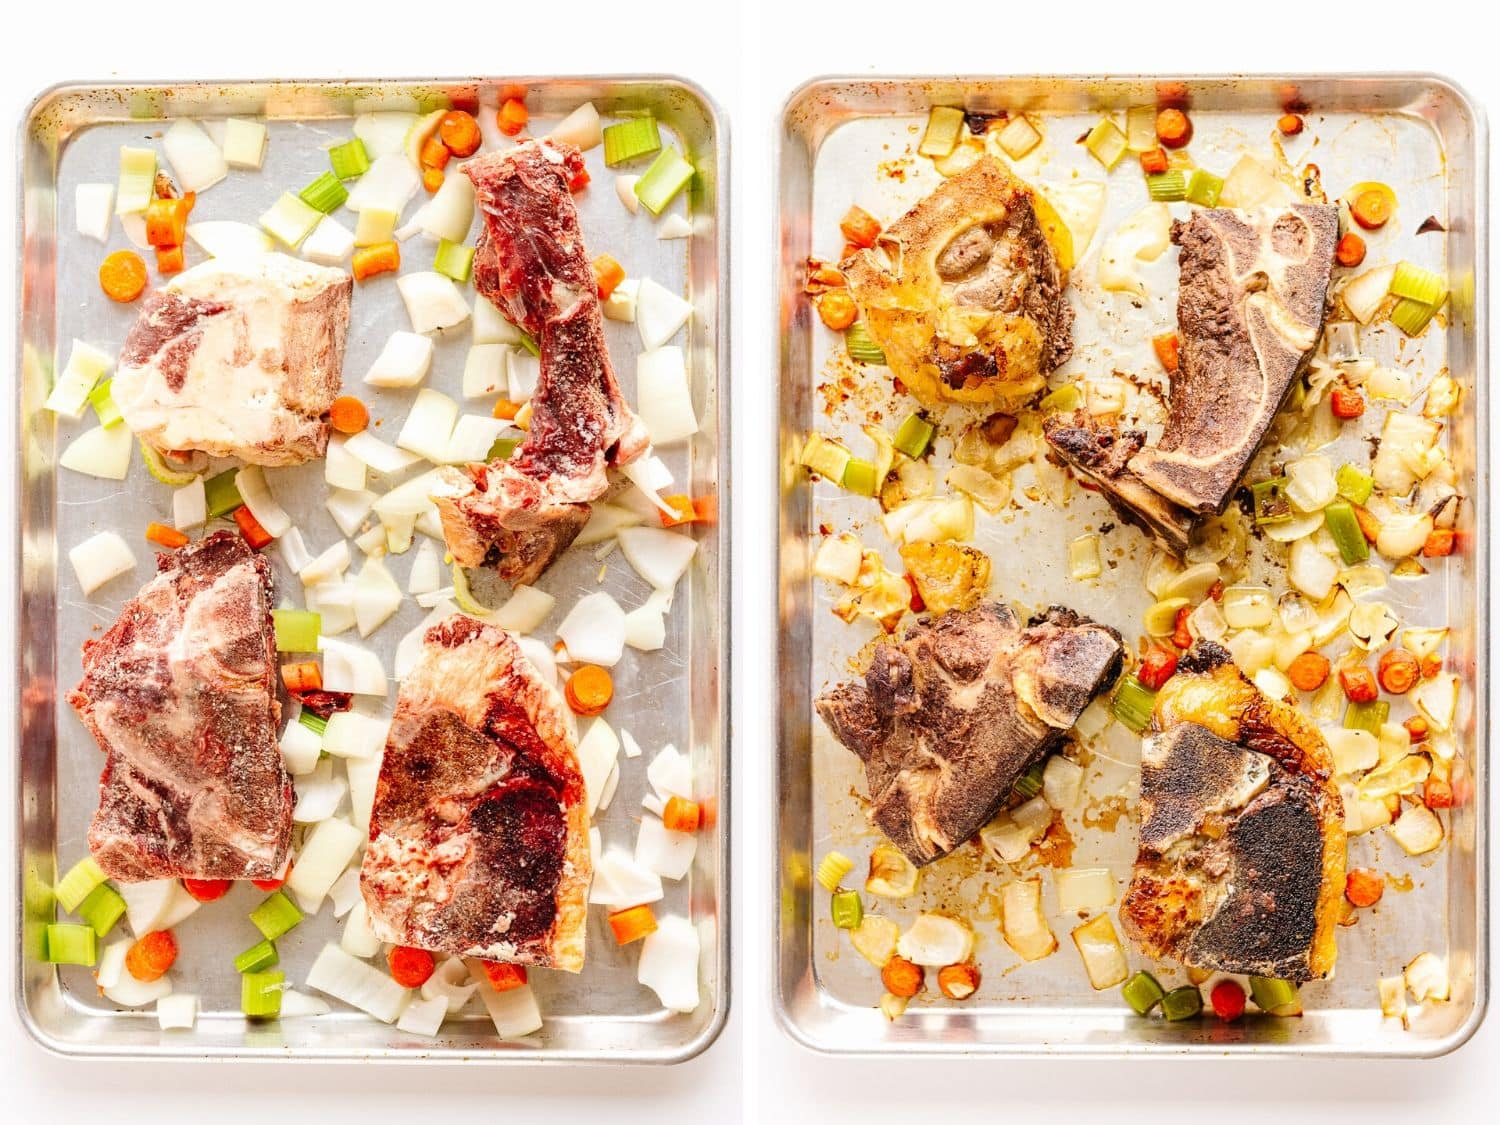 Collage of two photos showing baking sheet of beef bones, chopped onions, carrots and celery before and after roasting.